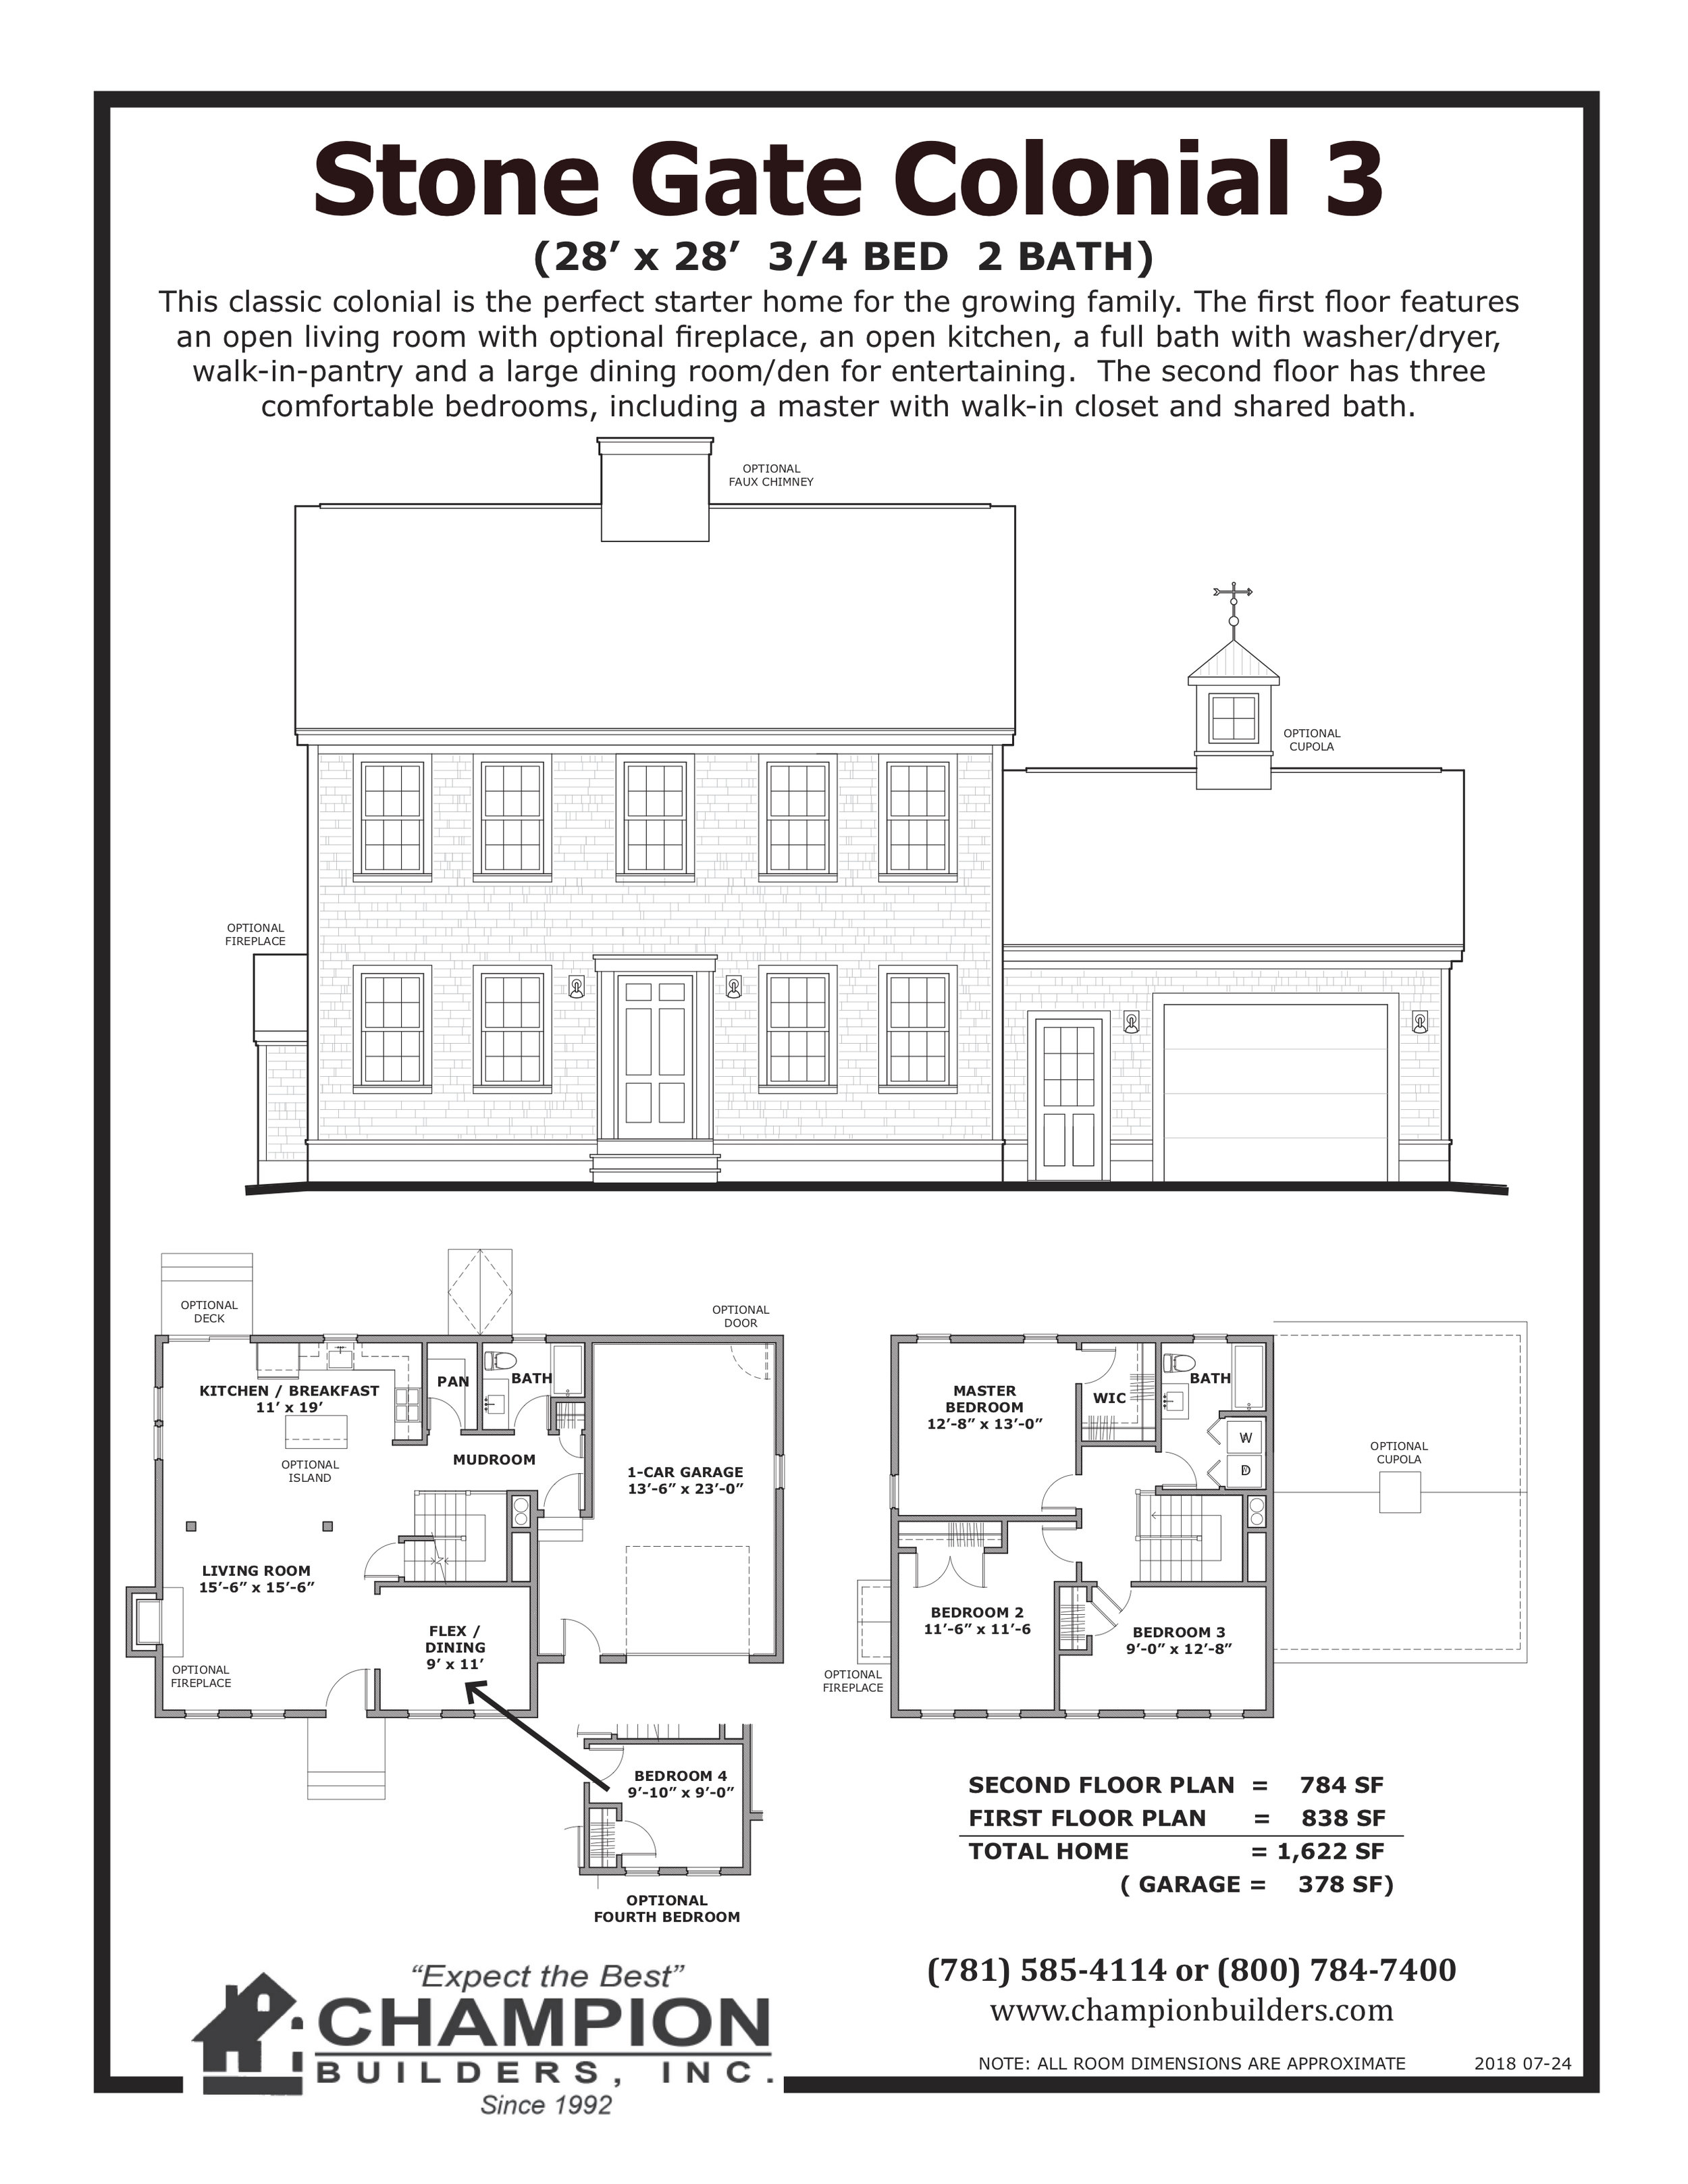 stone gate colonial 3 marketing plan.jpg